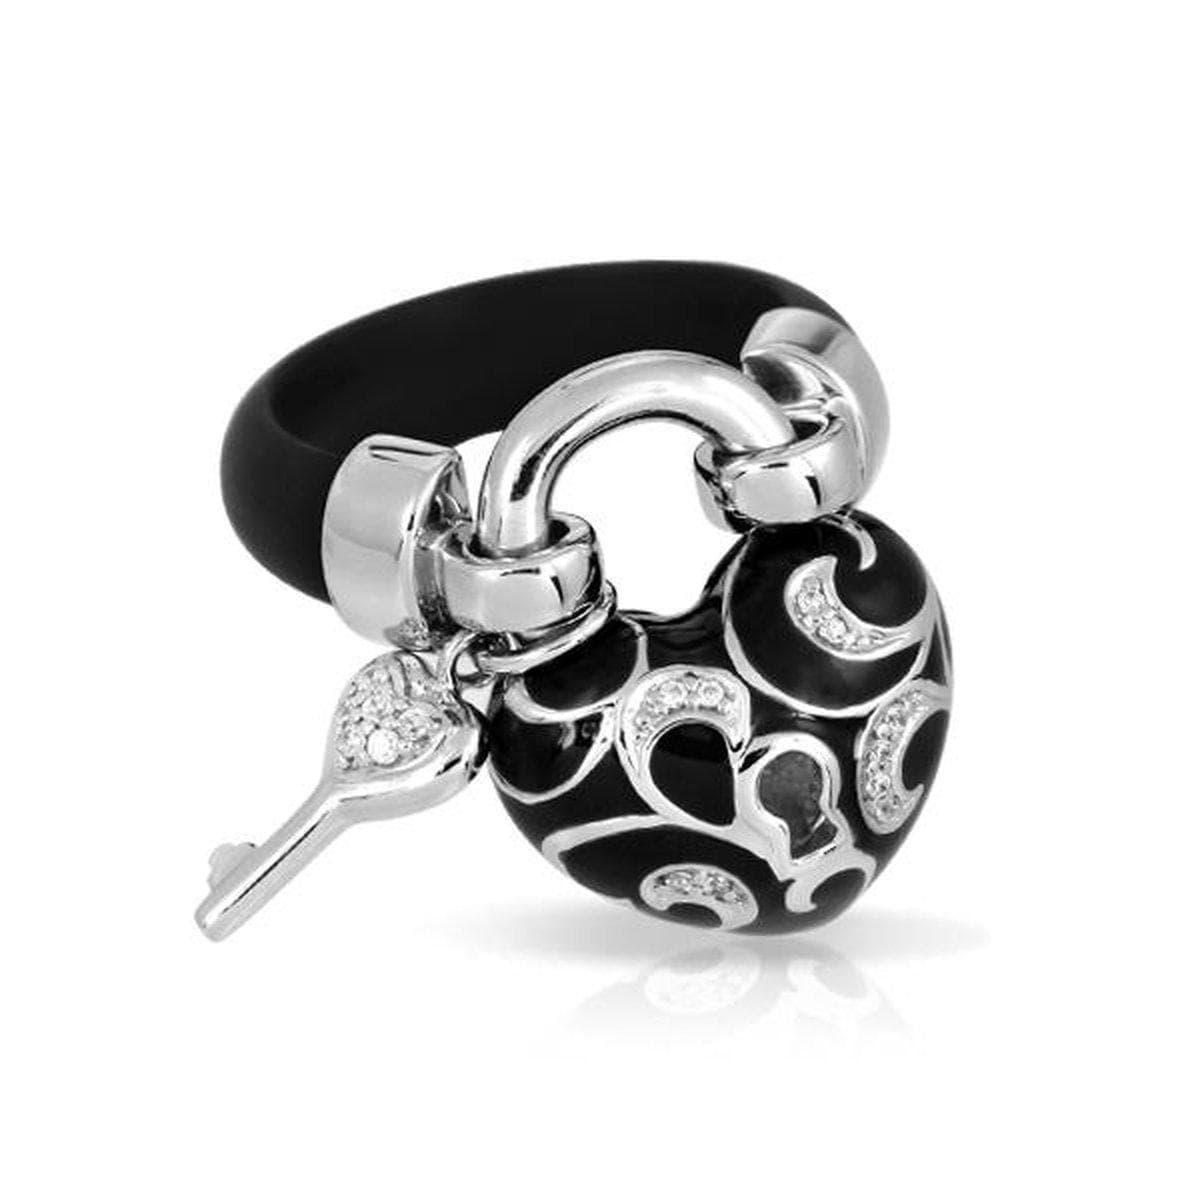 Key to My Heart Black Ring-Belle Etoile-Renee Taylor Gallery